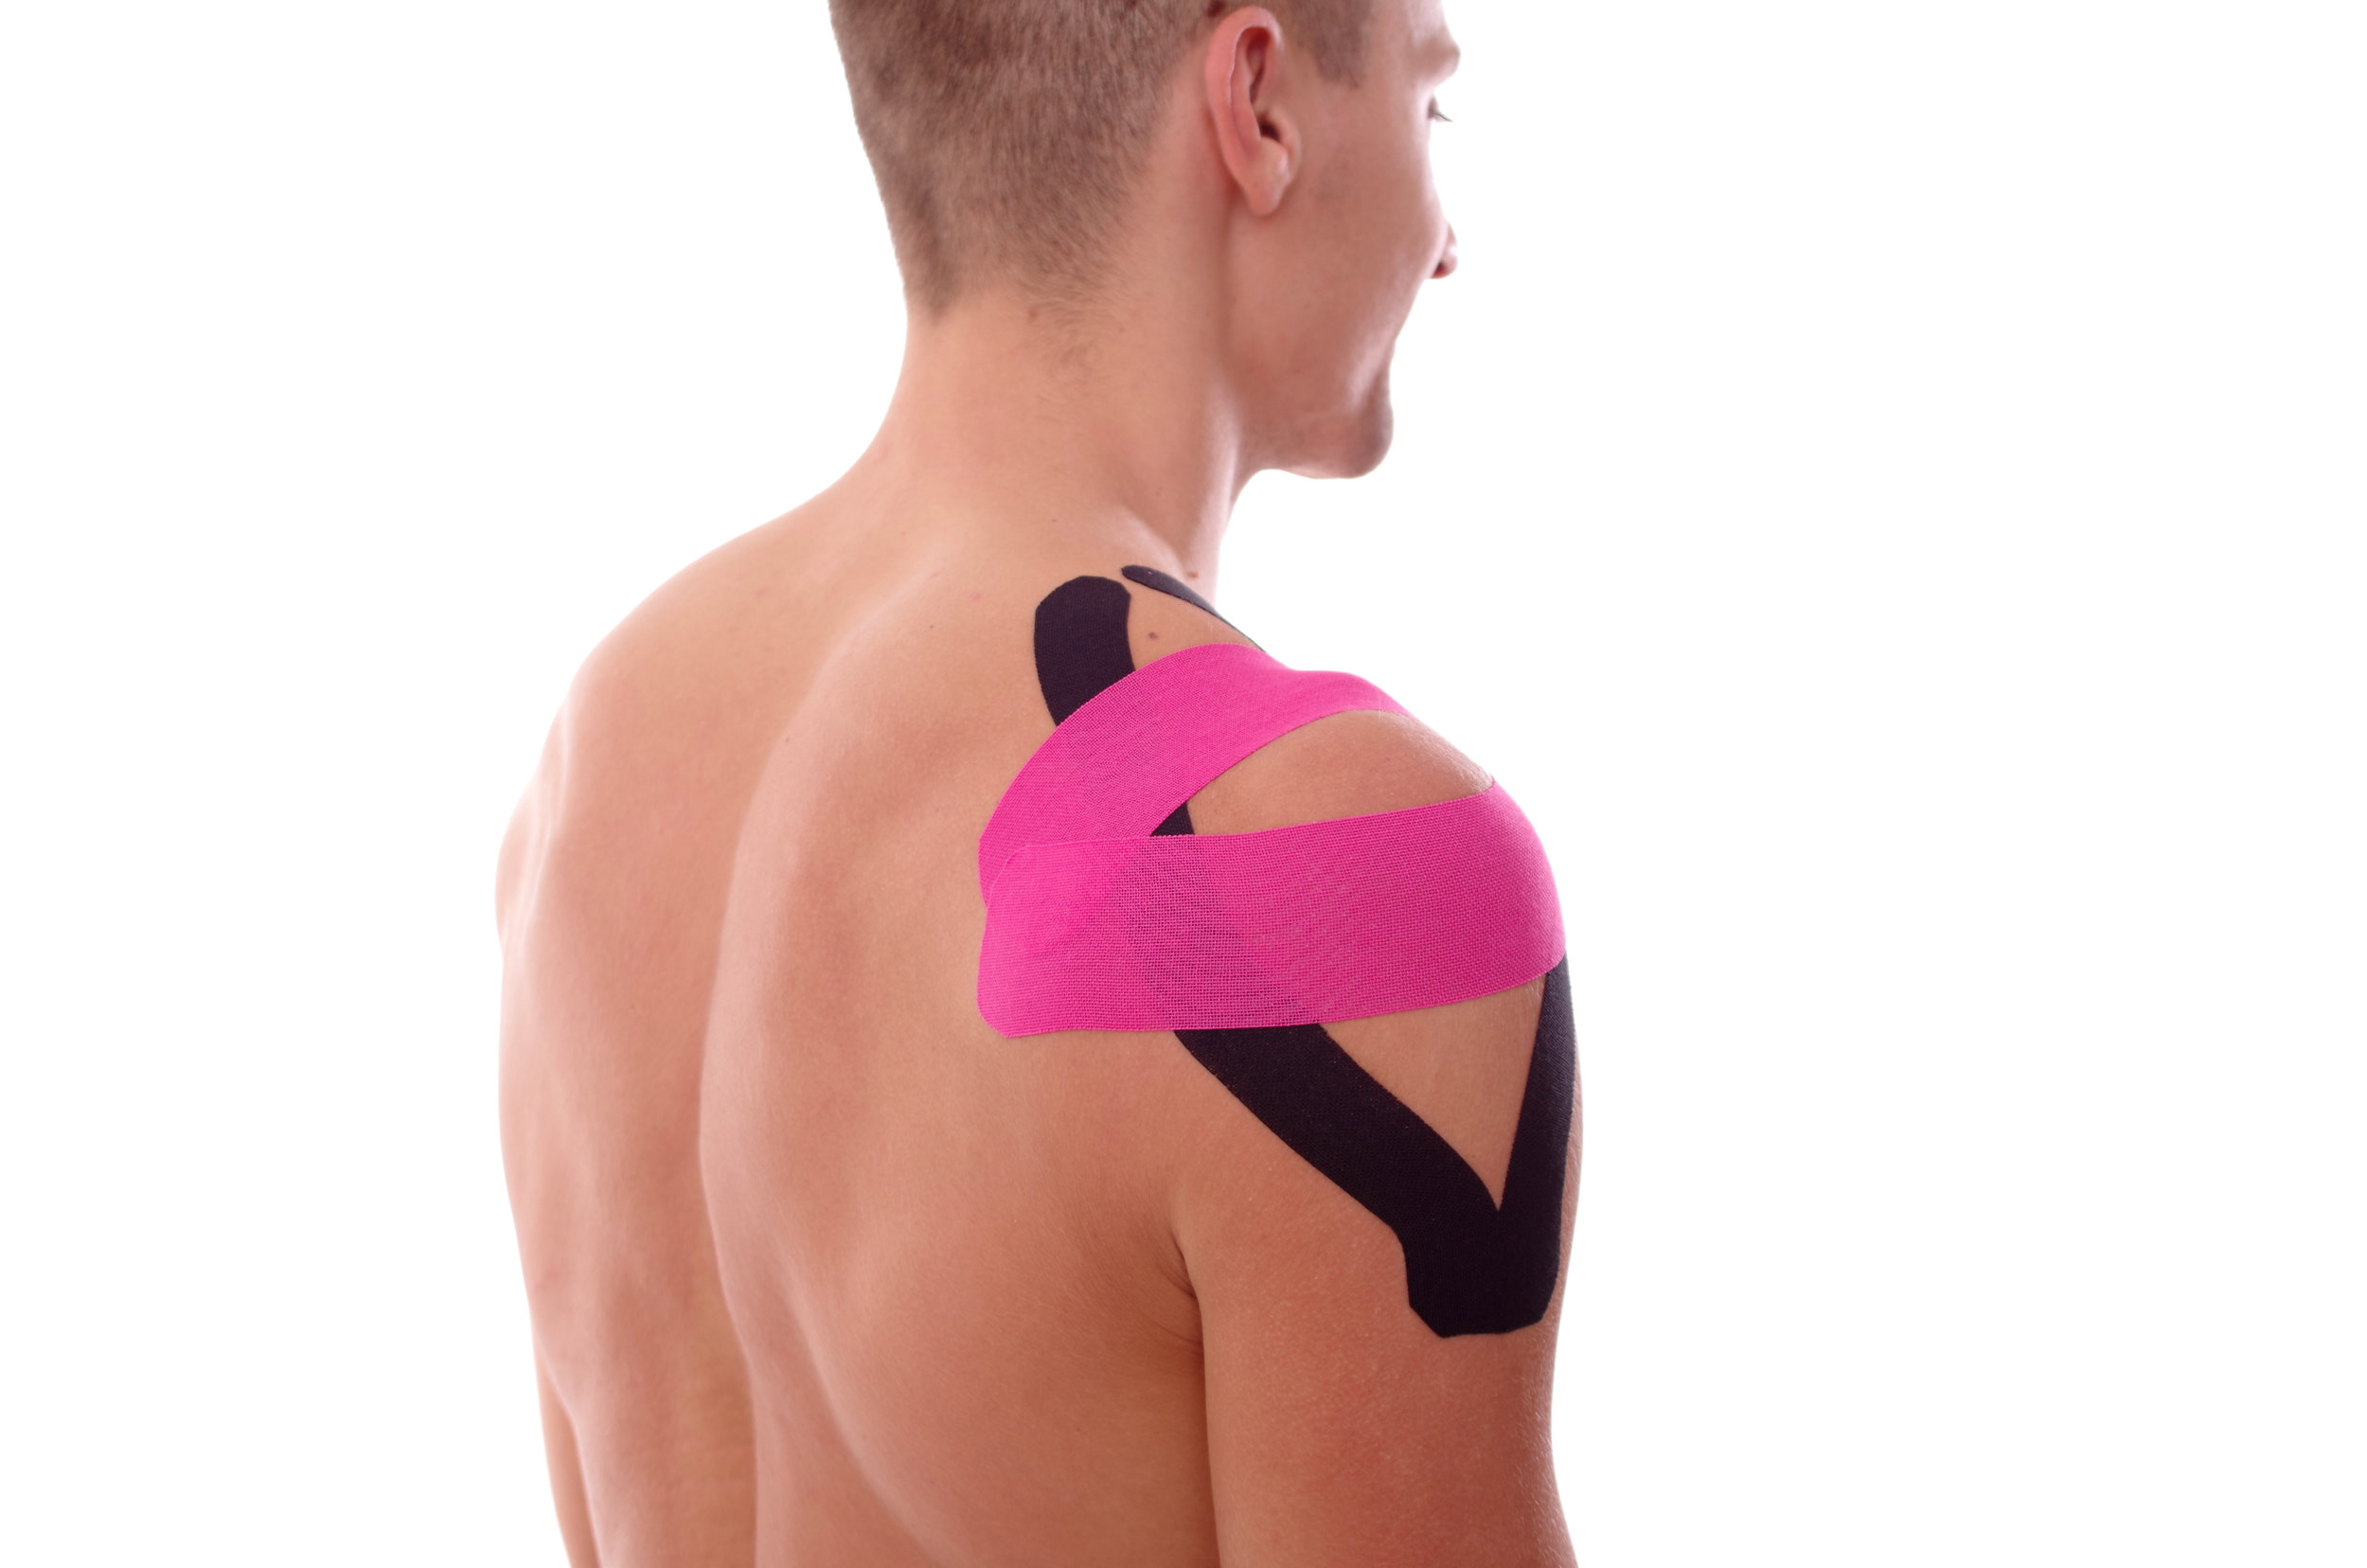 Grace Chiropractic-KT Tape- Kinesio Tape-Active Release Technique- Active Release Technique Asheville- Active Release Technique Hendersonville-Graston Technique -Andrea-Tahmooressi-Arden Chiropractor-Hendersonville Chiropractor – Dr. Andrea Chiropractor-Low back pain-Chiropractic-Mills River Chiropractor-Asheville Chiropractor-Fletcher Chiropractor- Doctor Andrea Hendersonville, NC -Headache relief-golfers elbow-Physical Therapy Hendersonville, NC-tennis elbow-shoulder pain-elbow pain-tendonitis-tendonitis treatment-neck pain-Low back pain relief-Dr. Andrea-Hendersonville NC Chiropractor.jpg